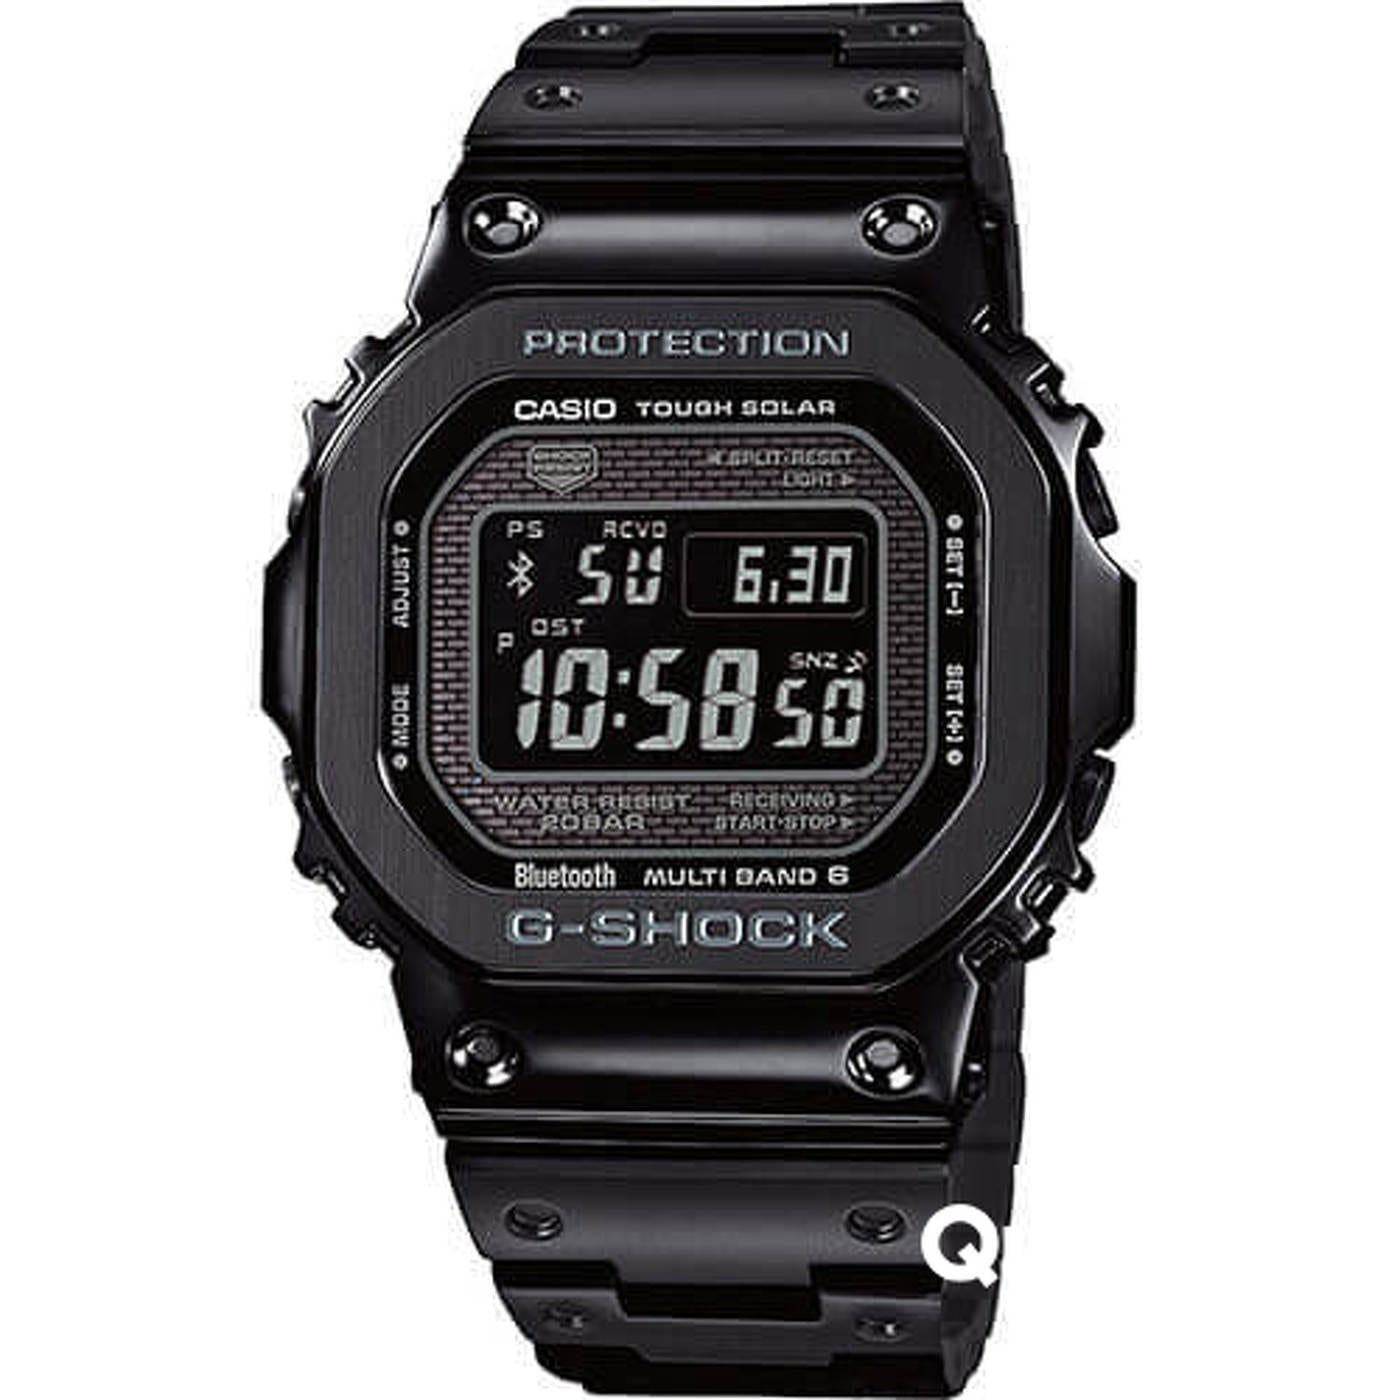 Casio G-Shock GMW-B5000GD-1ER puma black